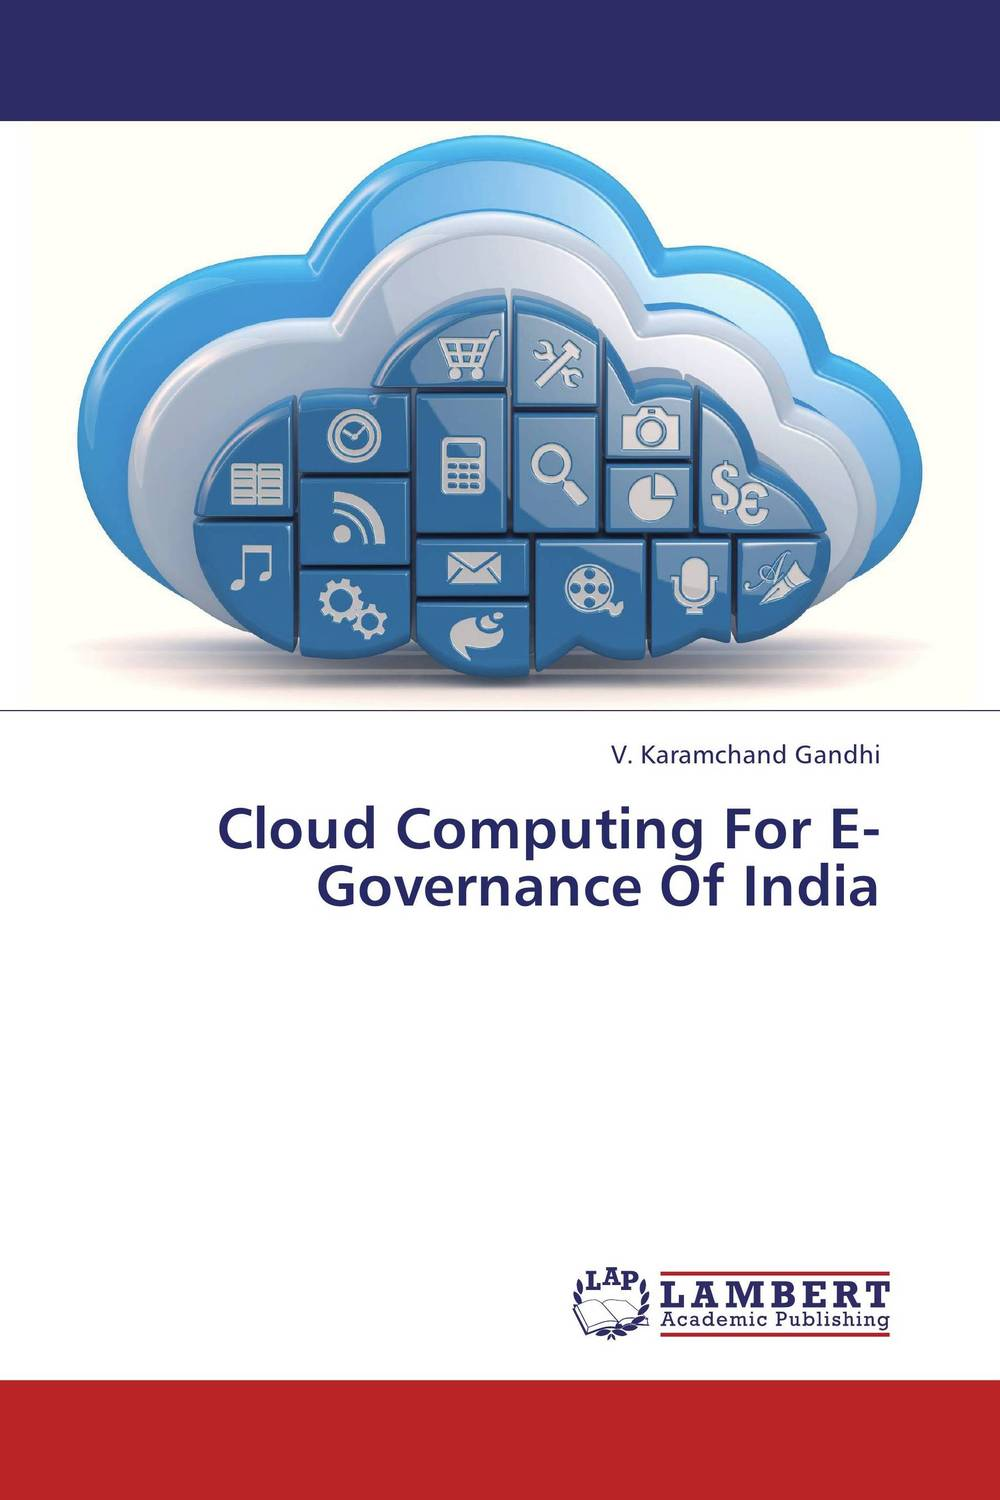 Cloud Computing For E-Governance Of India regression analysis of cloud computing adoption for u s hospitals